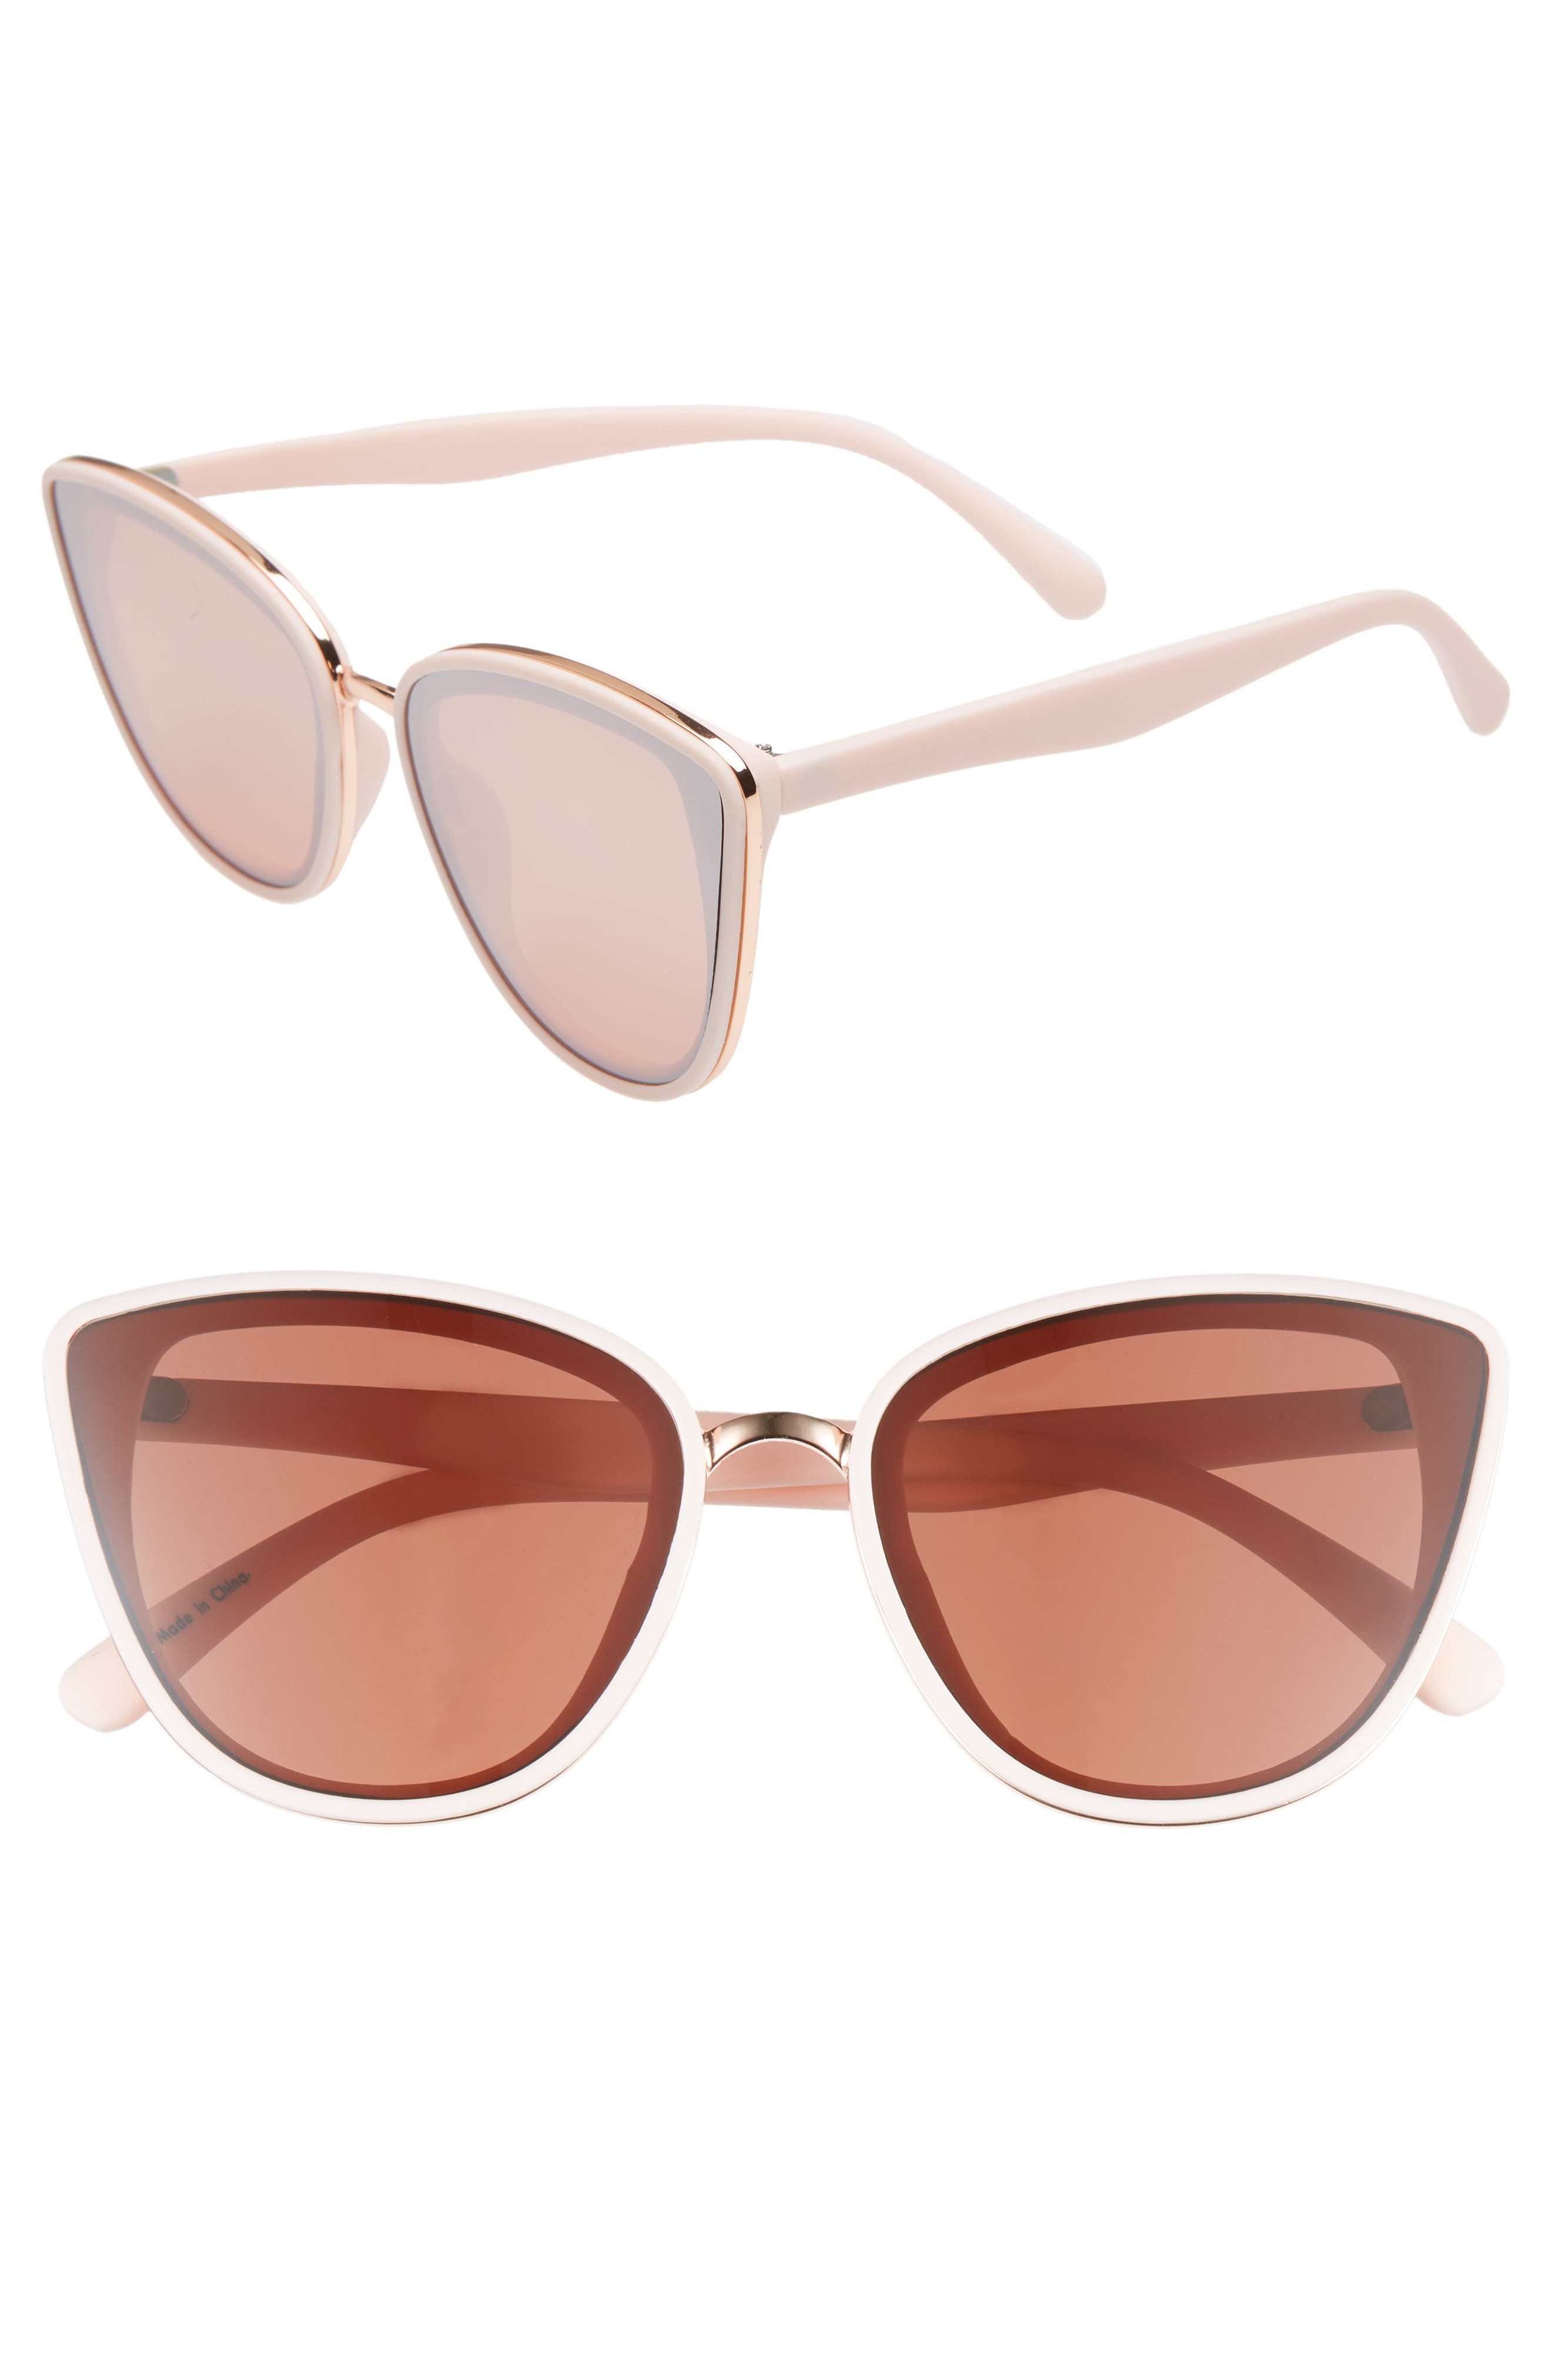 59mm Perfect Cat Eye Sunglasses,                             Main thumbnail 1, color,                             PINK